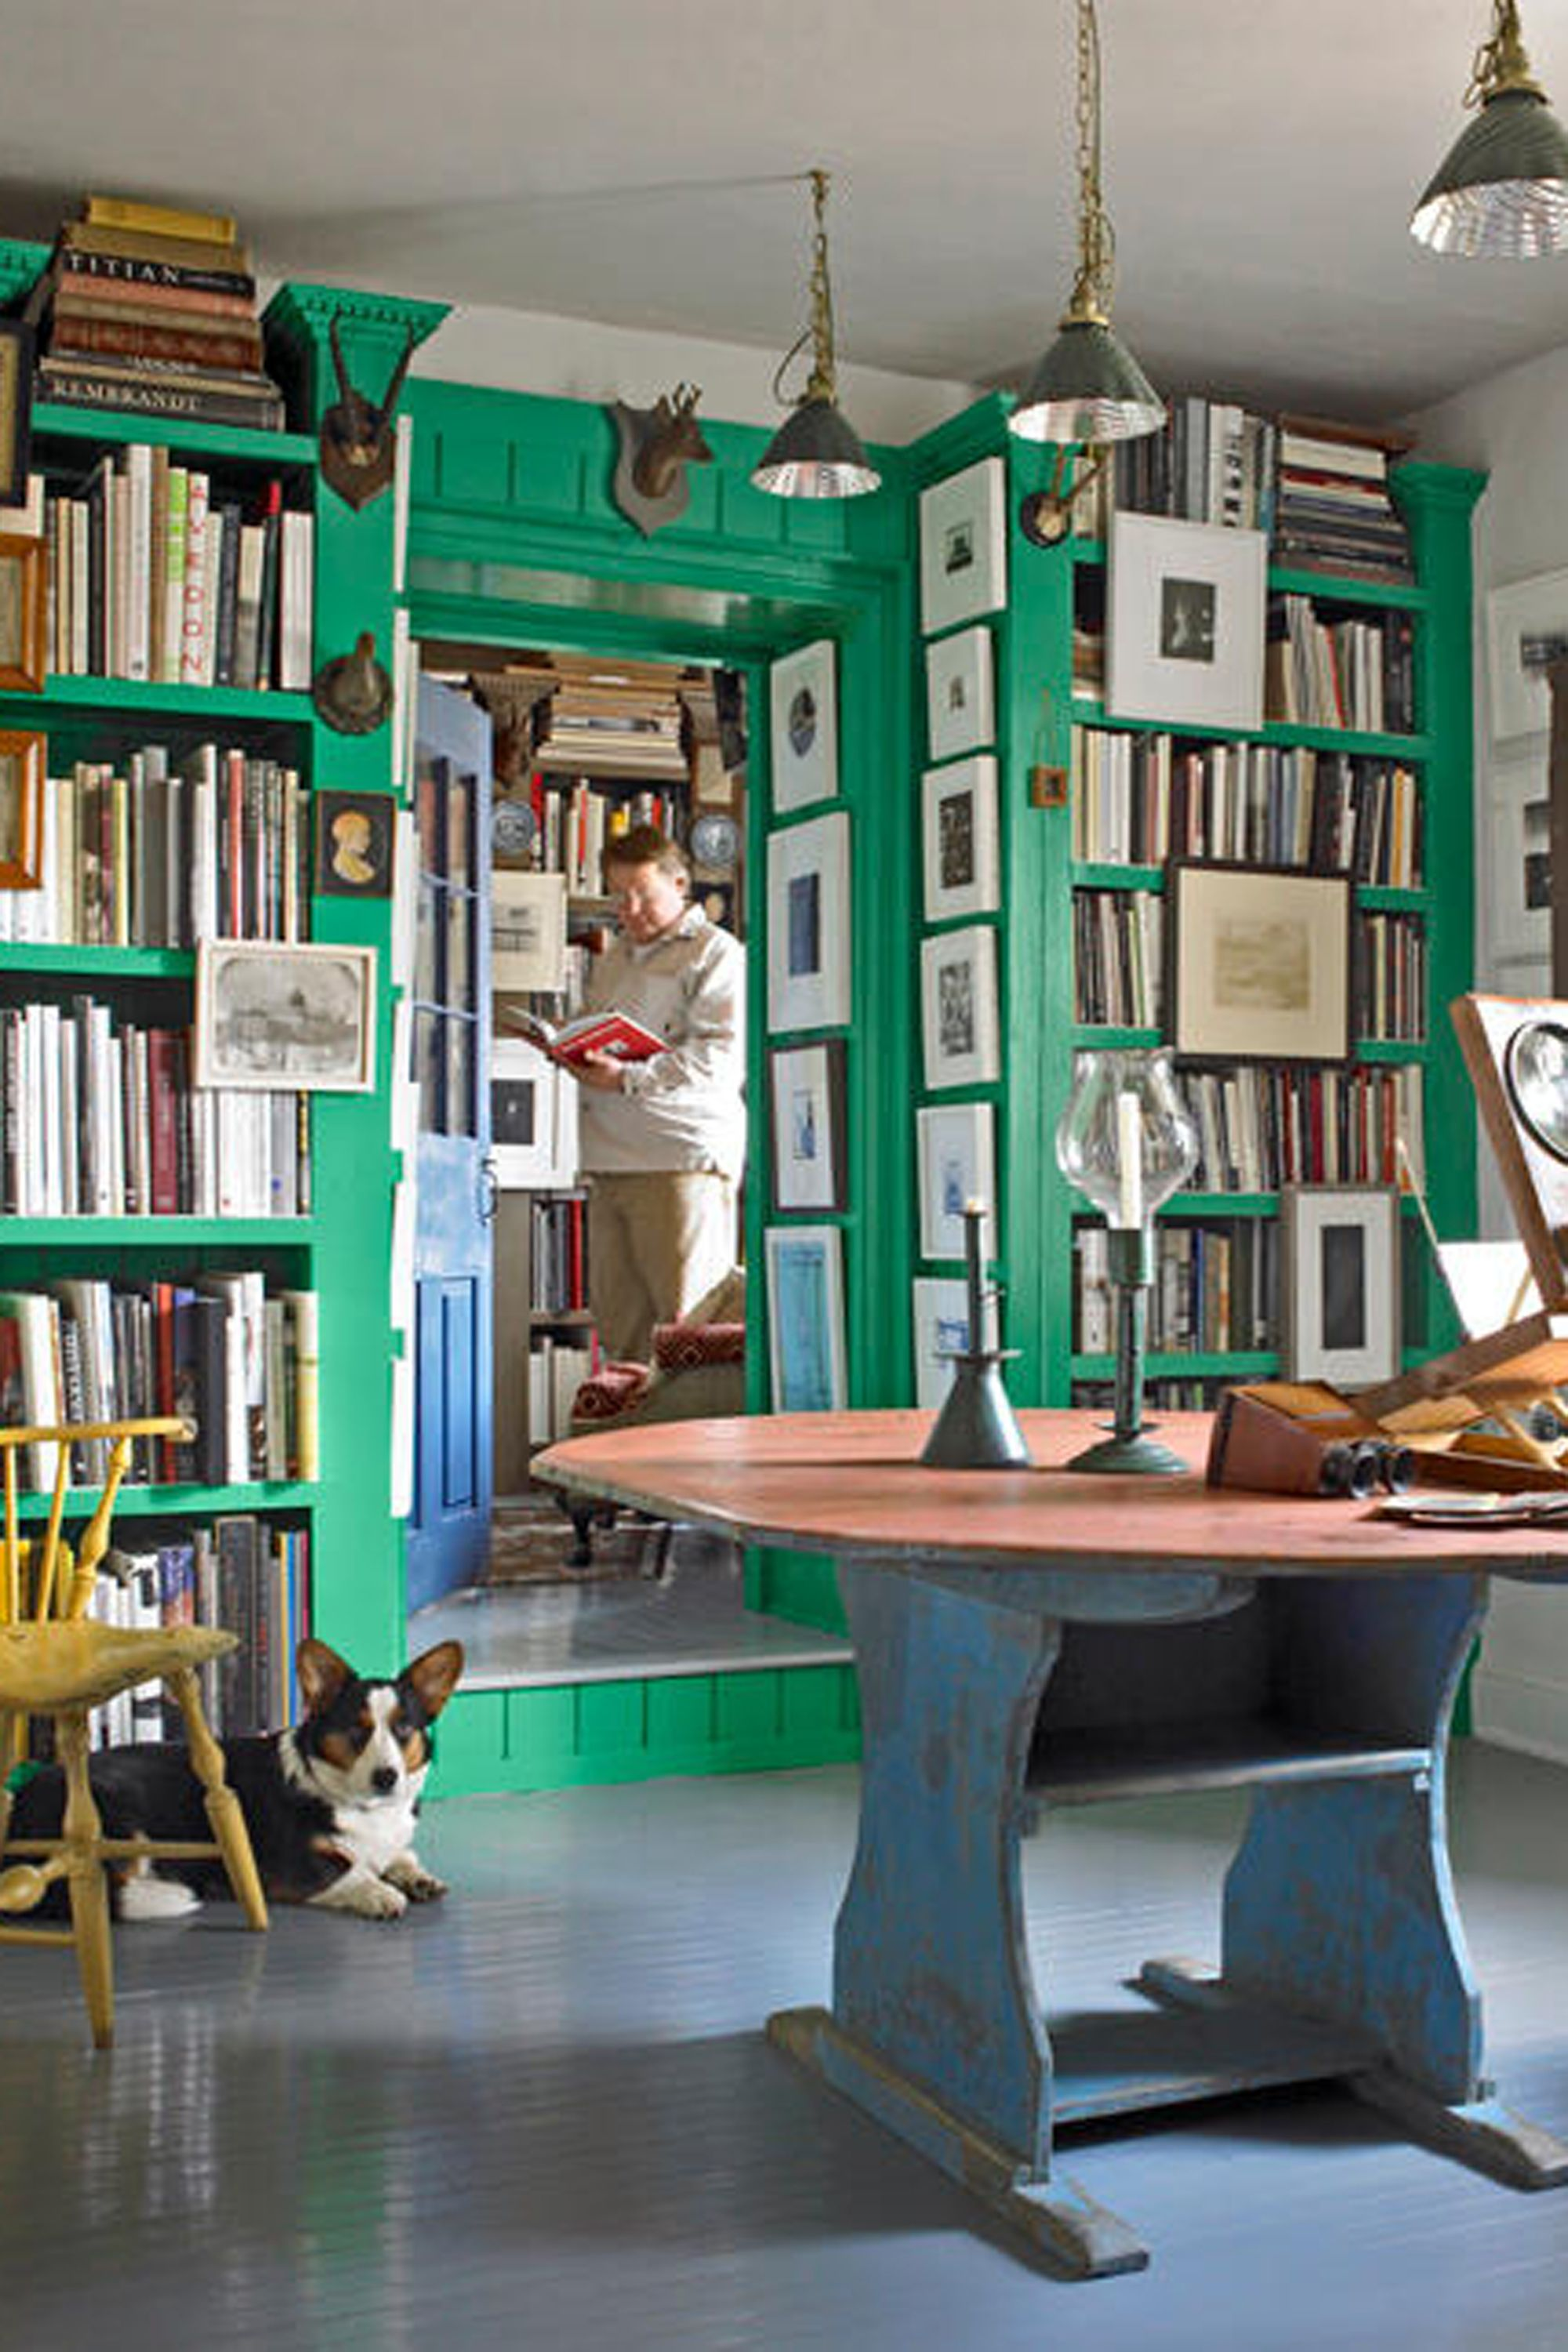 Decorating with green 43 ideas for green rooms and home decor